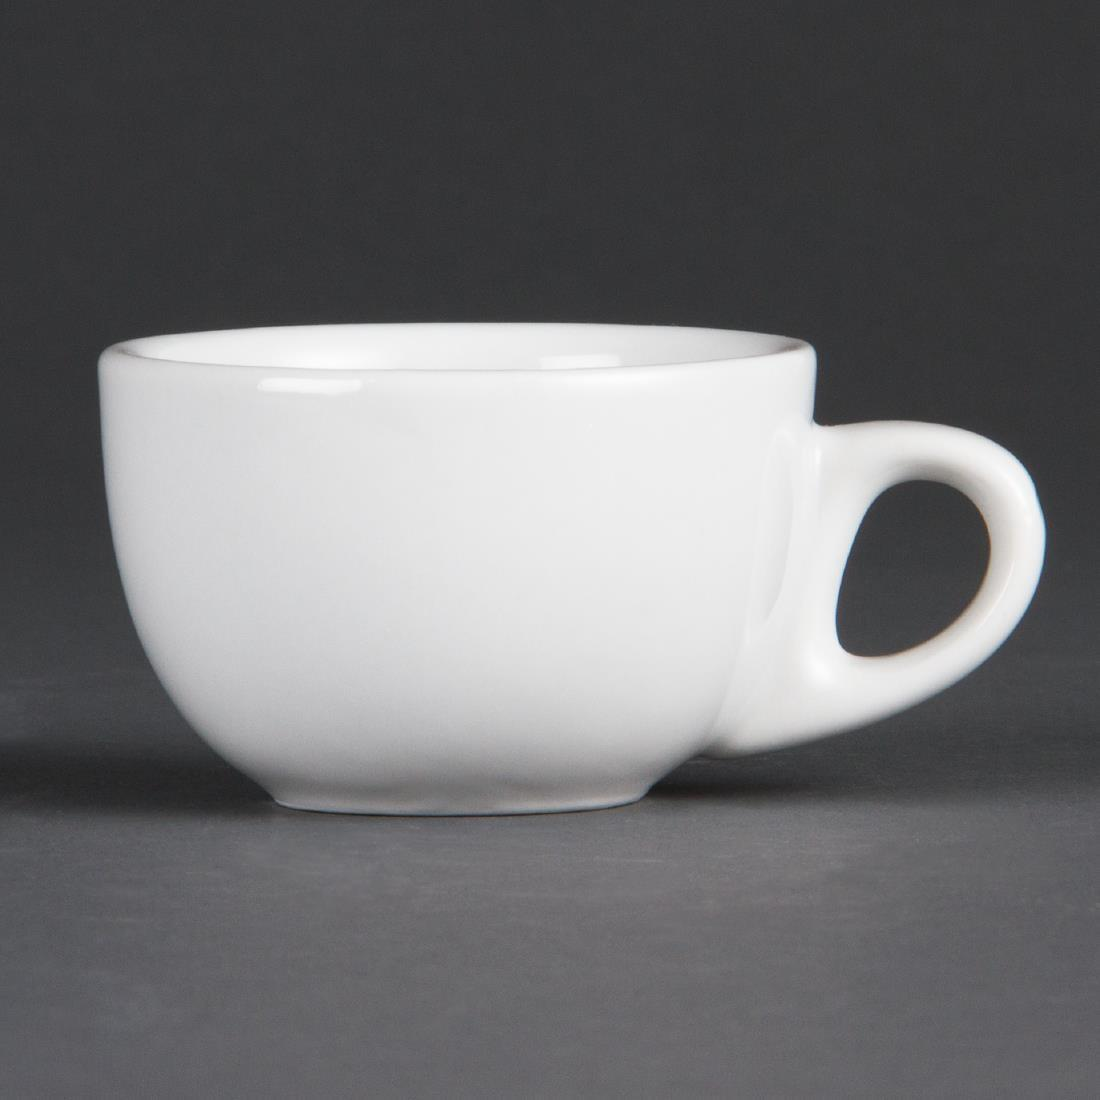 Olympia Whiteware Espresso Cups 85ml